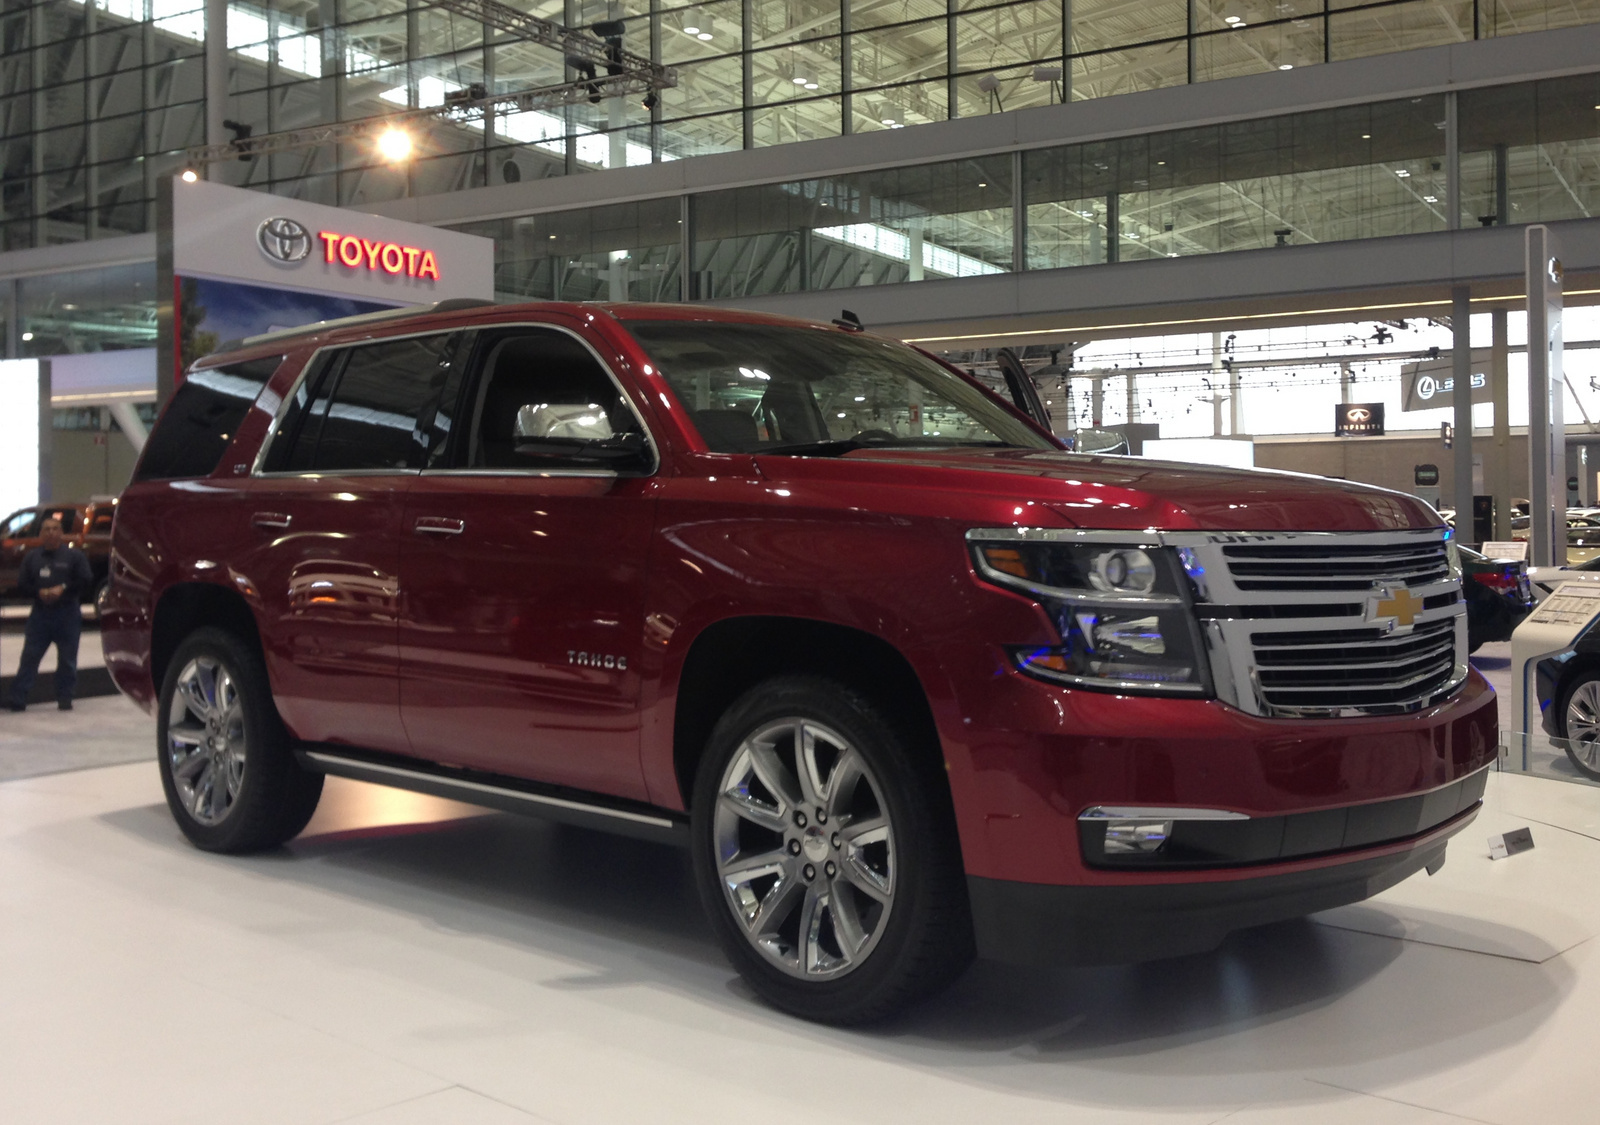 2014 Chevy Tahoe For Sale >> 2015 Chevrolet Tahoe Overview Cargurus